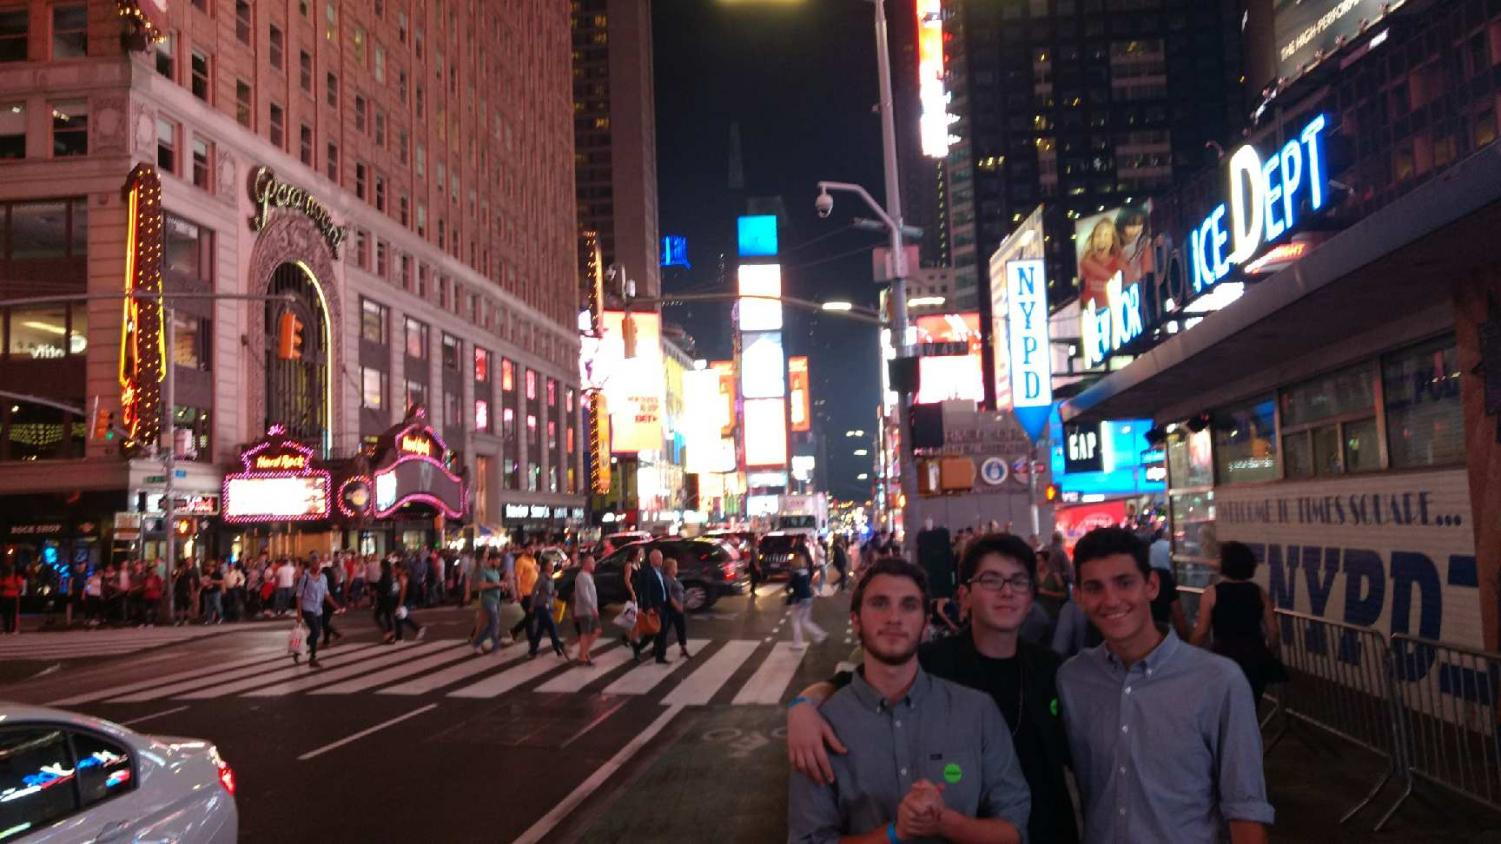 Juniors Aiden Glikmann, left, and Benjamin Fuller, center, pose in Times Square. Glikmann and Fuller were invited to participate in the International High School Film Festival in New York City for their short-film